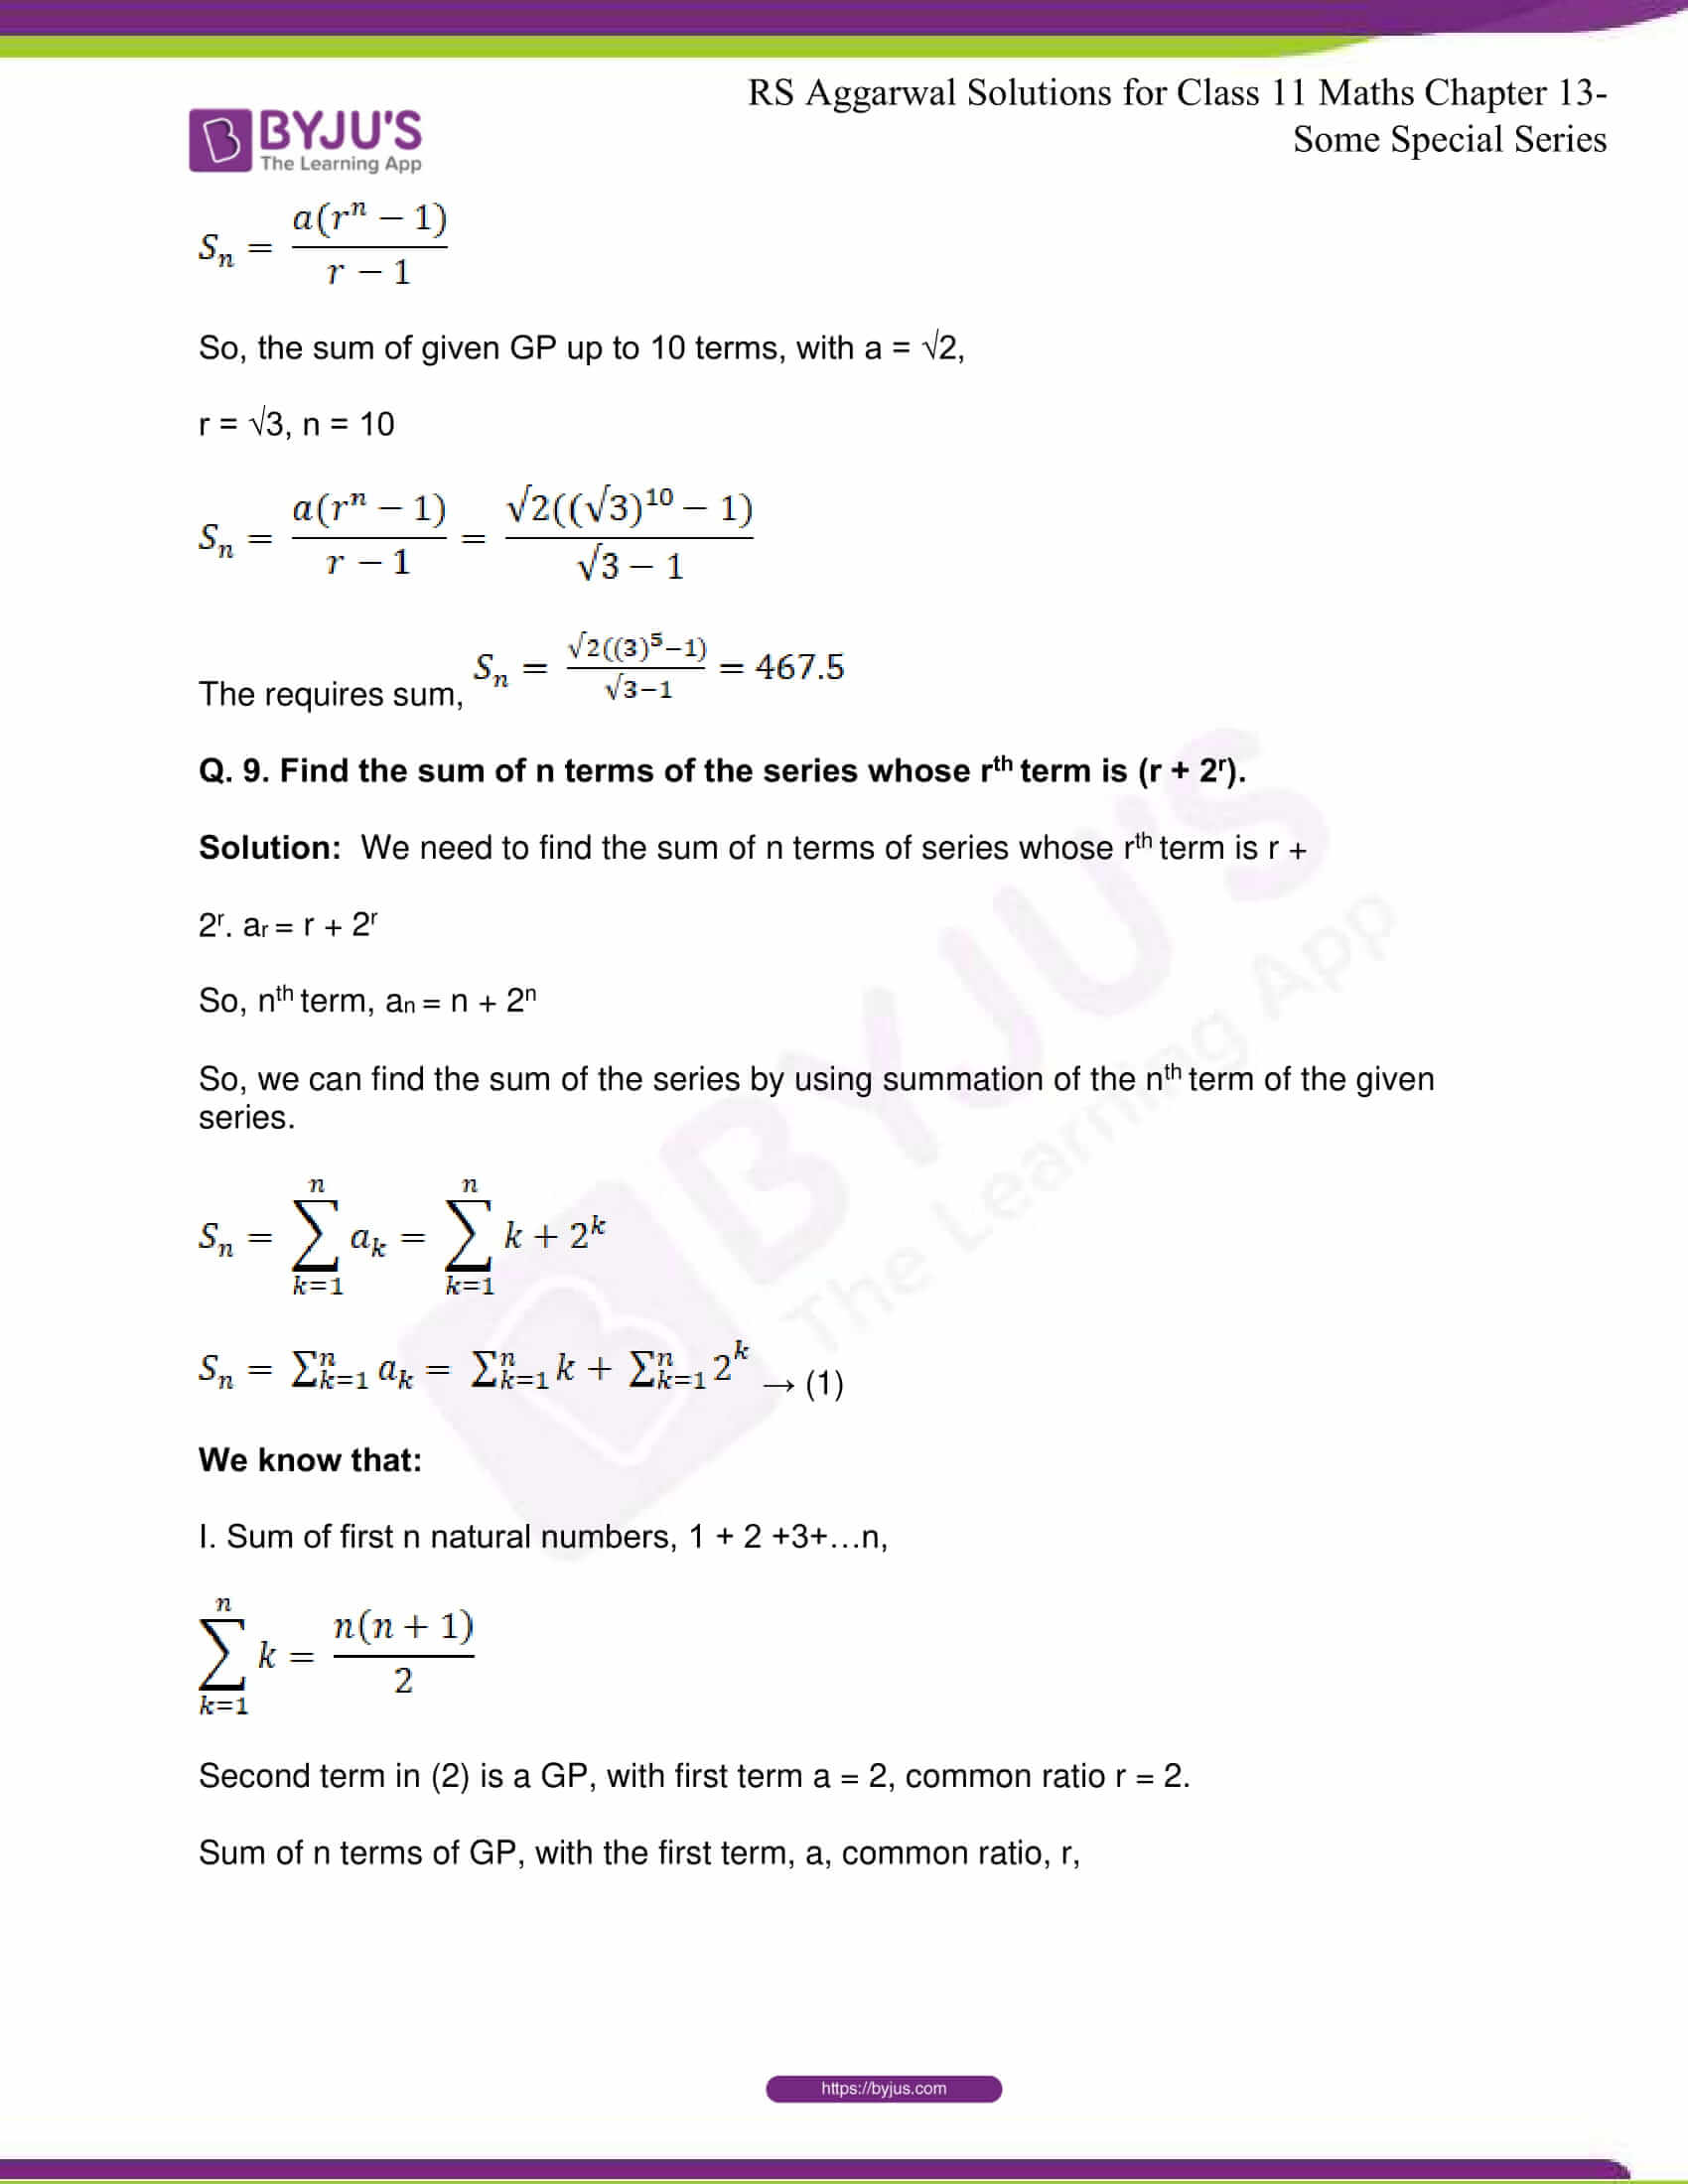 rsaggarwal solutions class 11 maths chapter 13 56